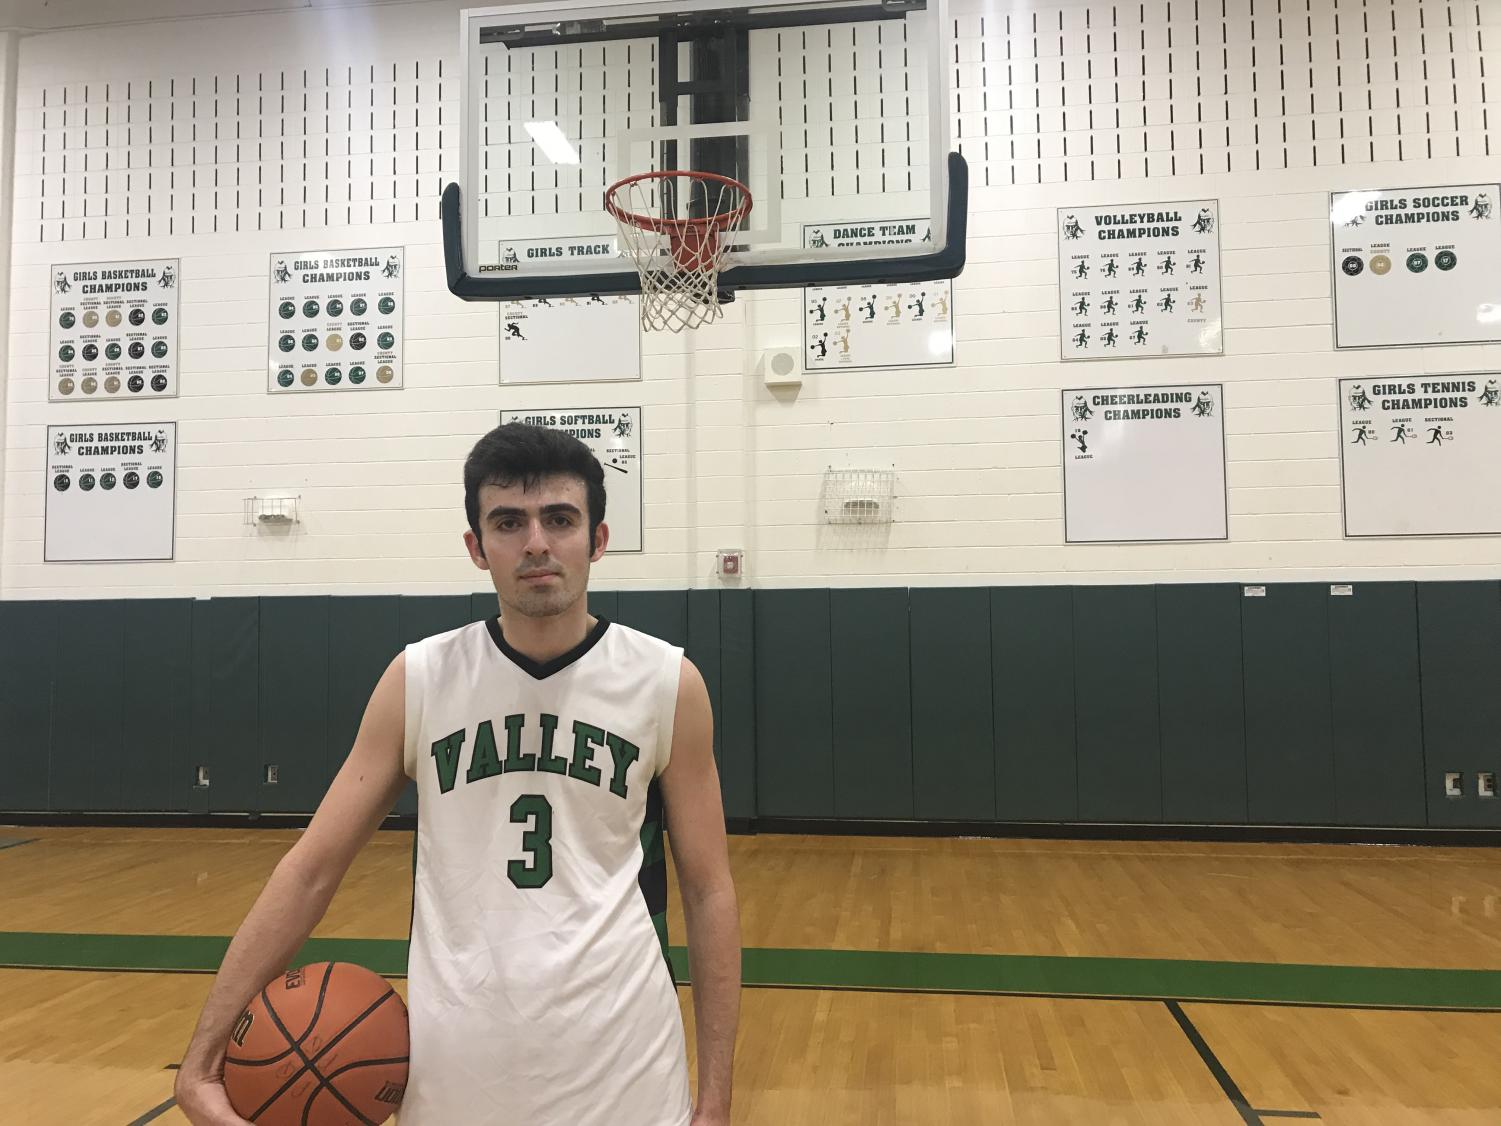 PV Senior Max Yellin after a recent game against Indian Hills. Yellin is averaging 20.6 points per game this season.